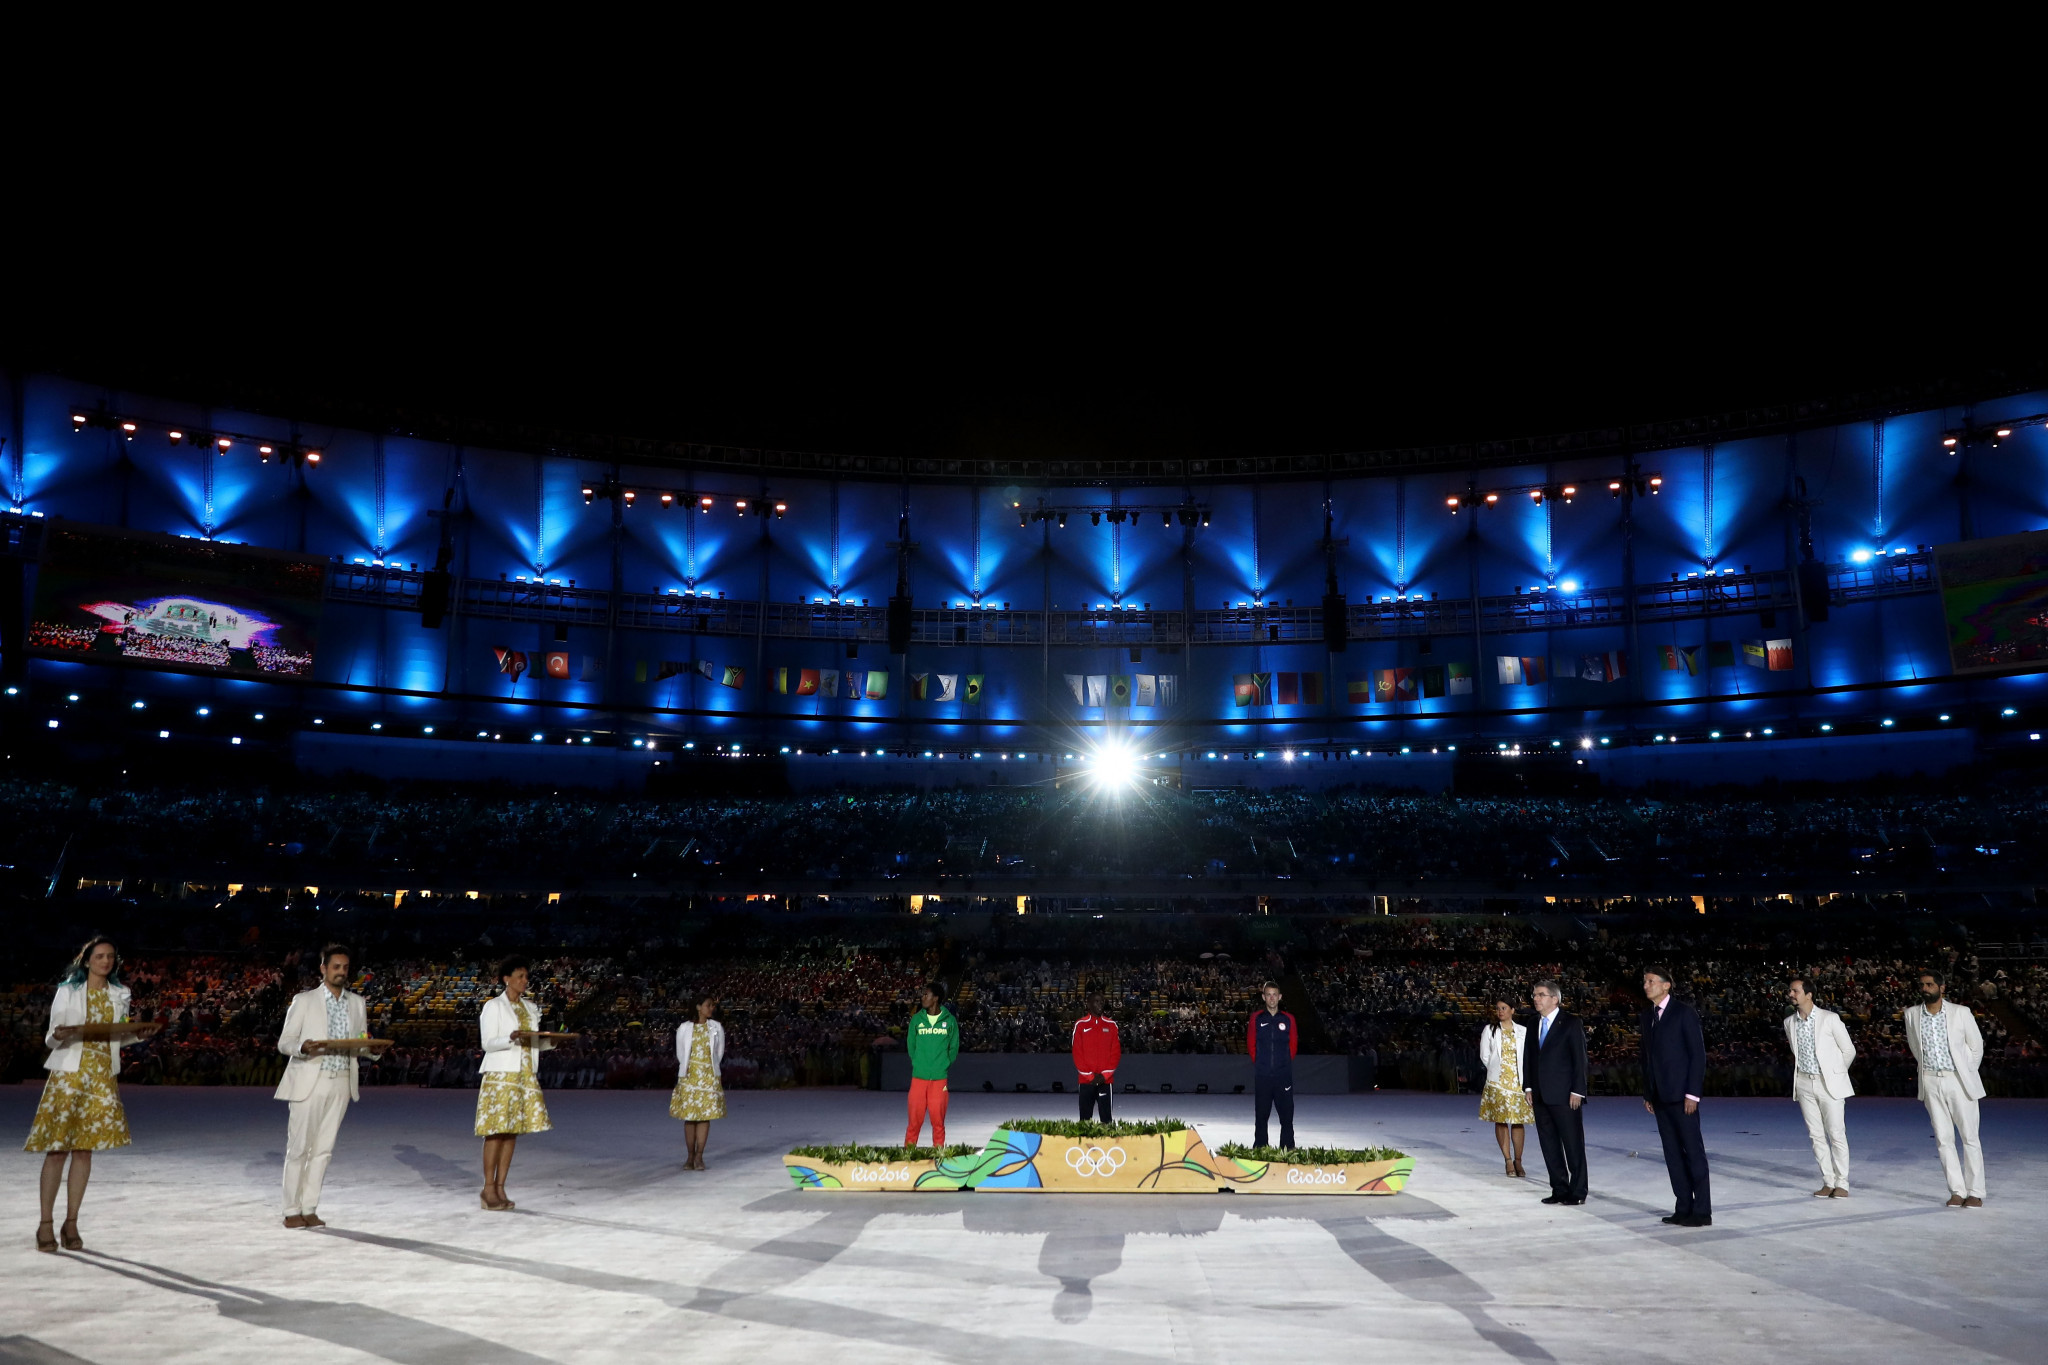 It has become an Olympic tradition for the men's marathon to be the last athletics event of the Games and for the medals to be presented during the Closing Ceremony ©Getty Images